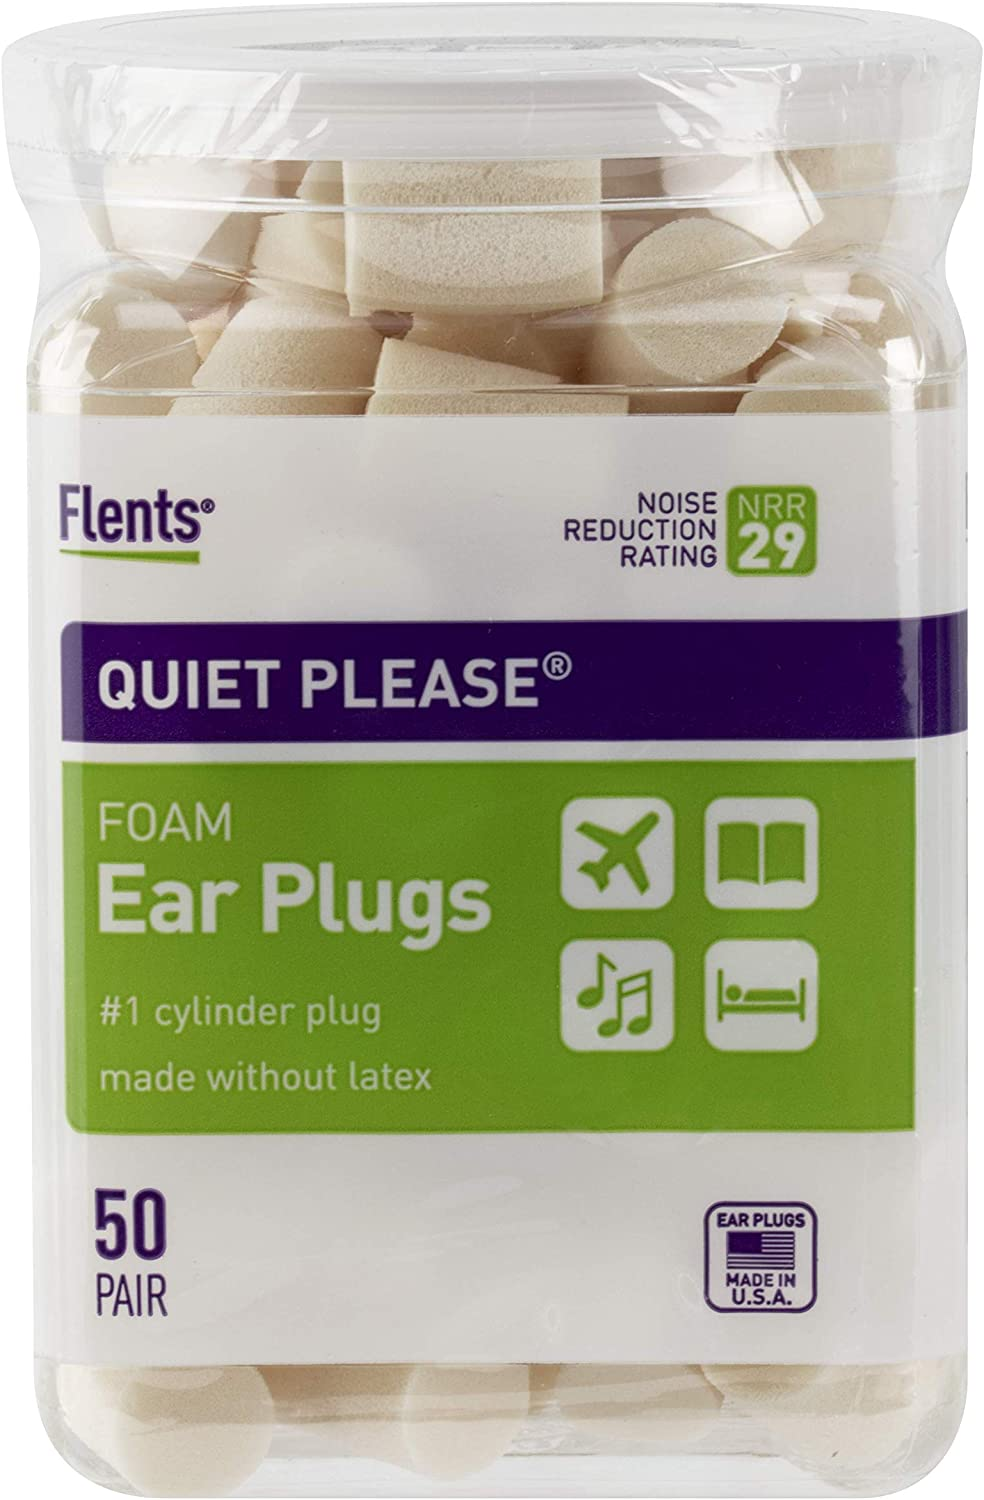 Flents Ear Plugs, 50 Pair, Ear Plugs for Sleeping, Snoring, Loud Noise, Traveling, Concerts, Construction, & Studying, NRR 29: Health & Personal Care